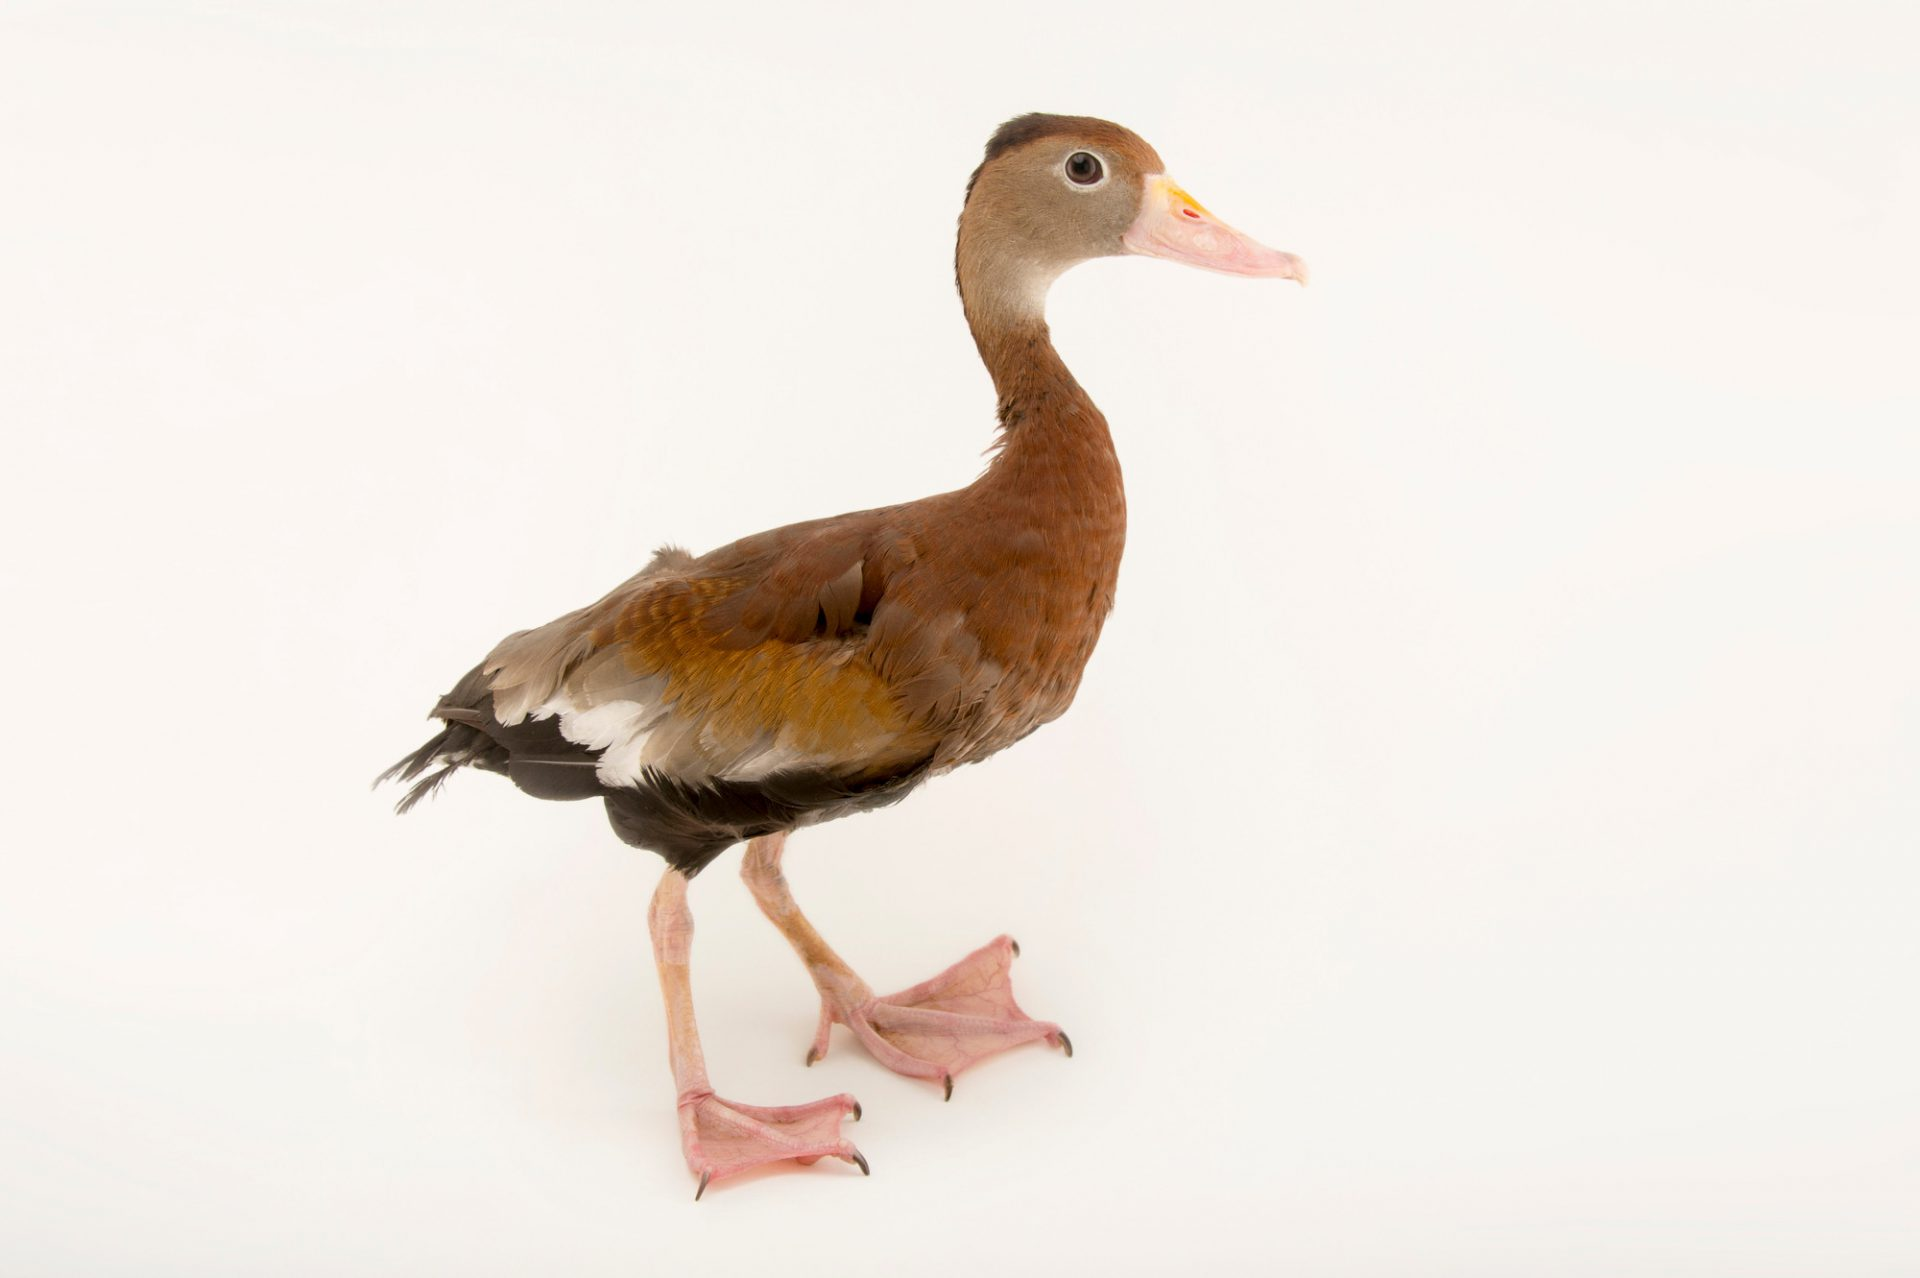 Picture of a northern black-bellied whistling duck (Dendrocygna autumnalis autumnalis) at the Tulsa Zoo.